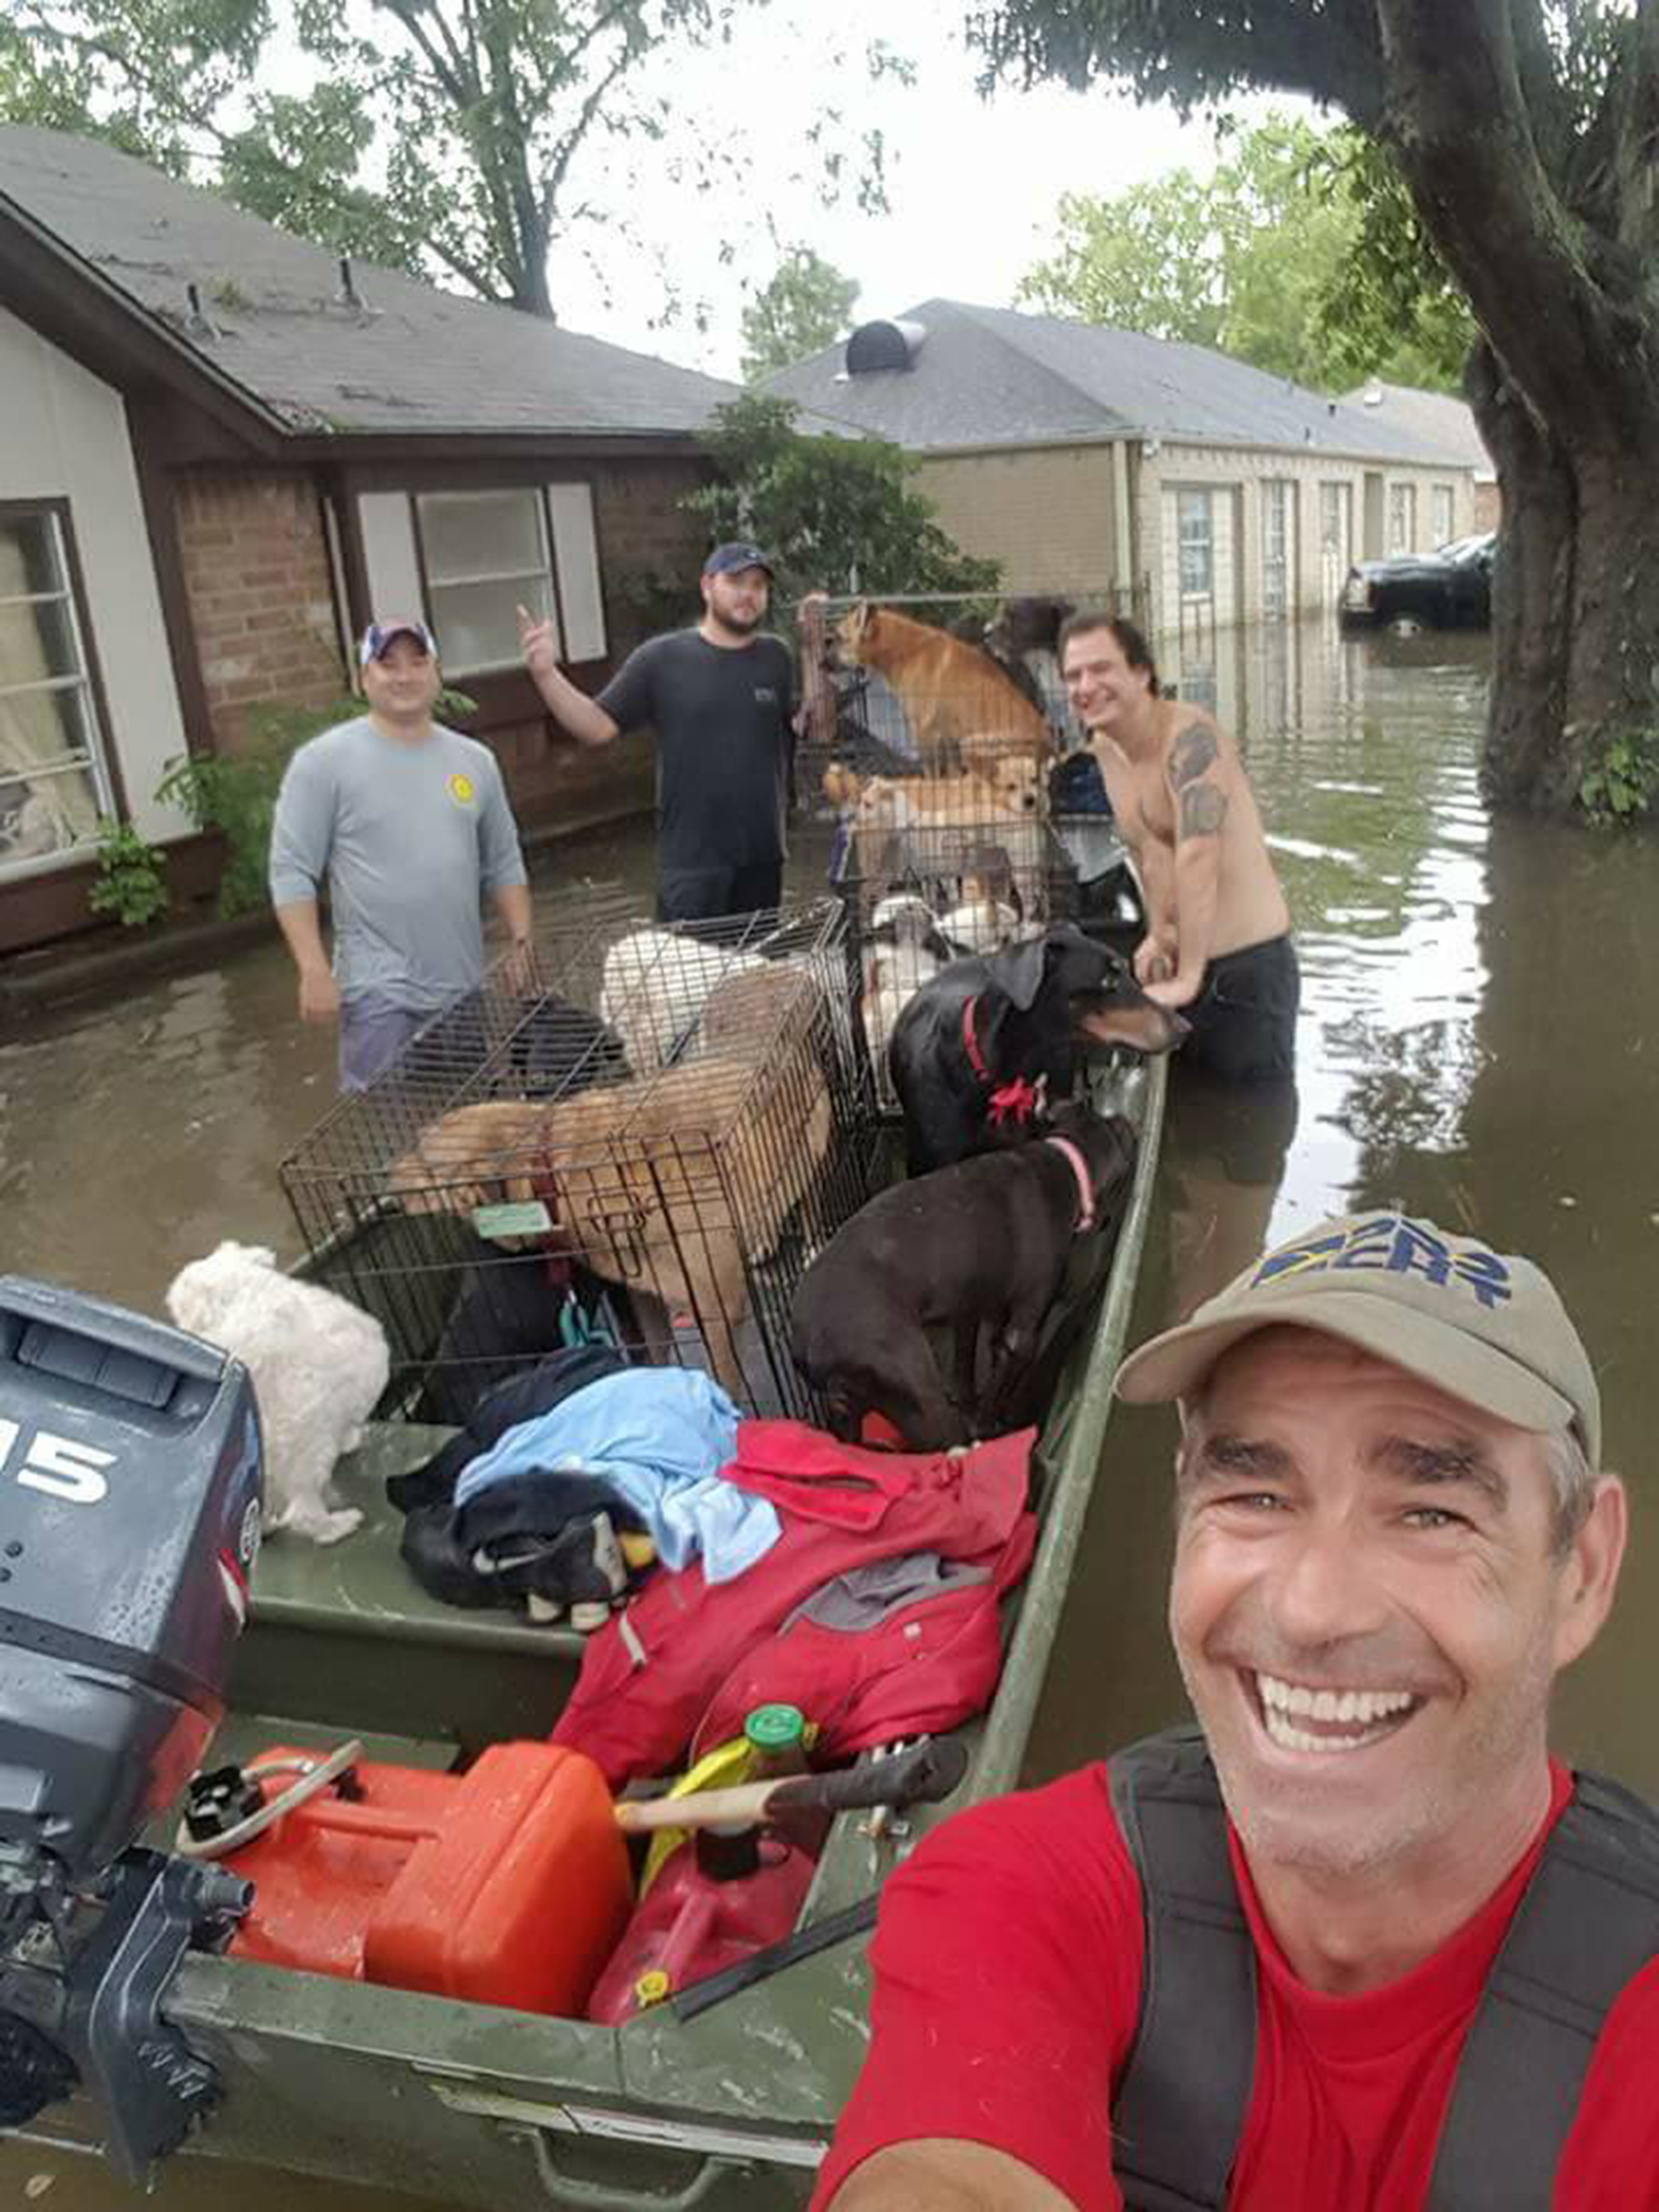 Image: Good Samaritans Buck Beasley, Jeremy Williams and Anthony Hernandez helped animal rescuer Betty Walter transport her dogs to safety in southeast Houston, Texas on August 30, 2017.